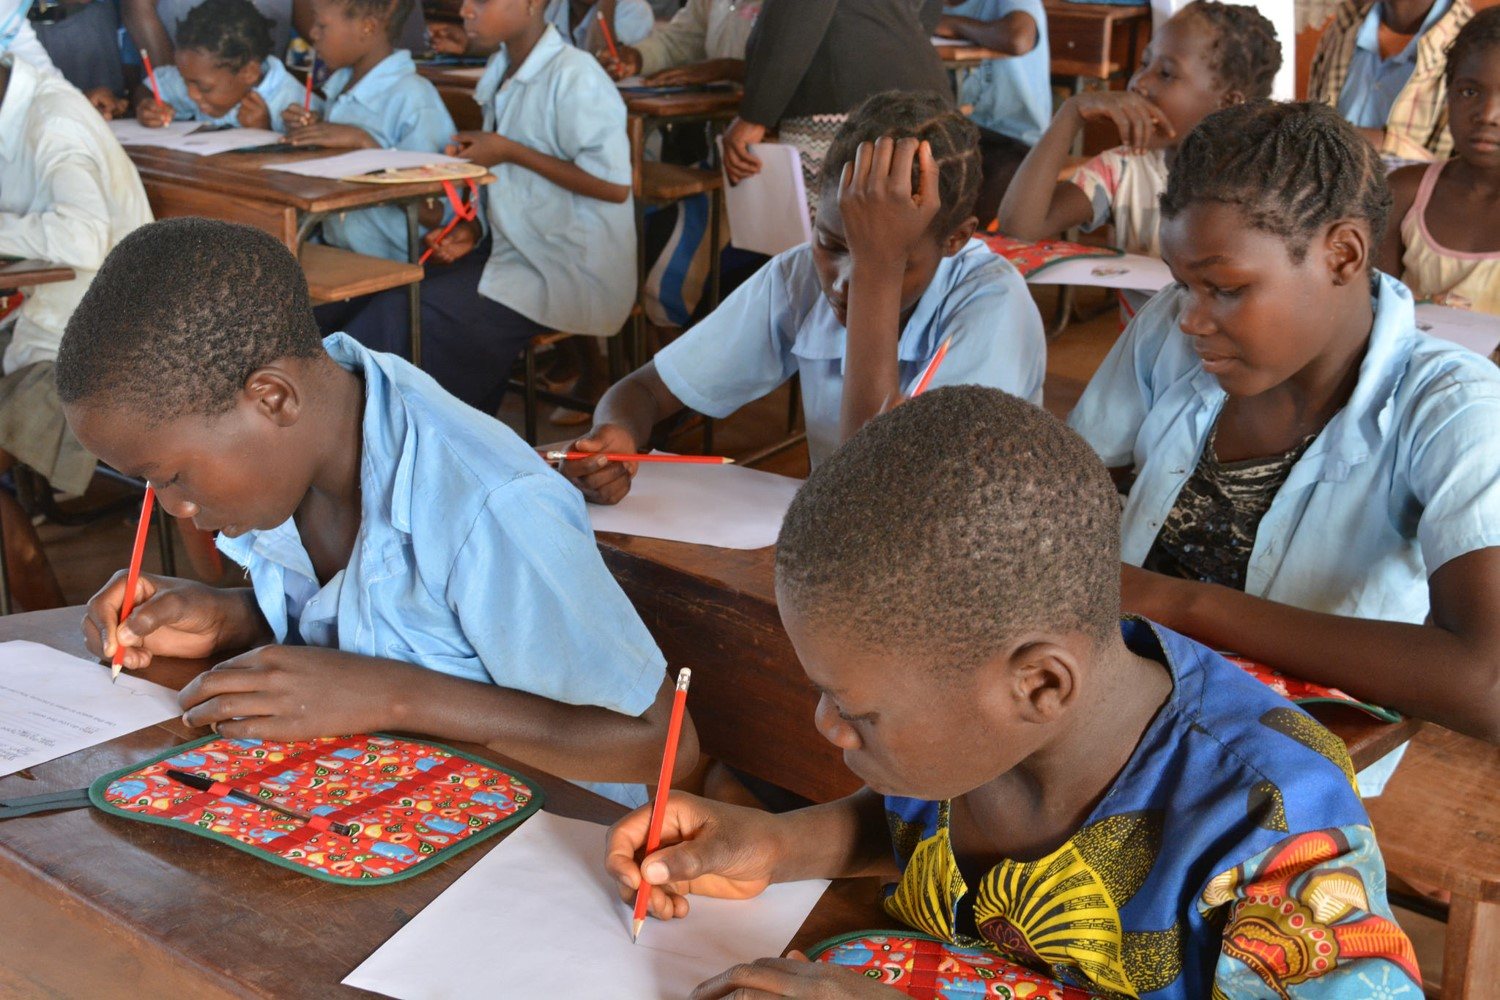 A photo of children in Mozambique working at school